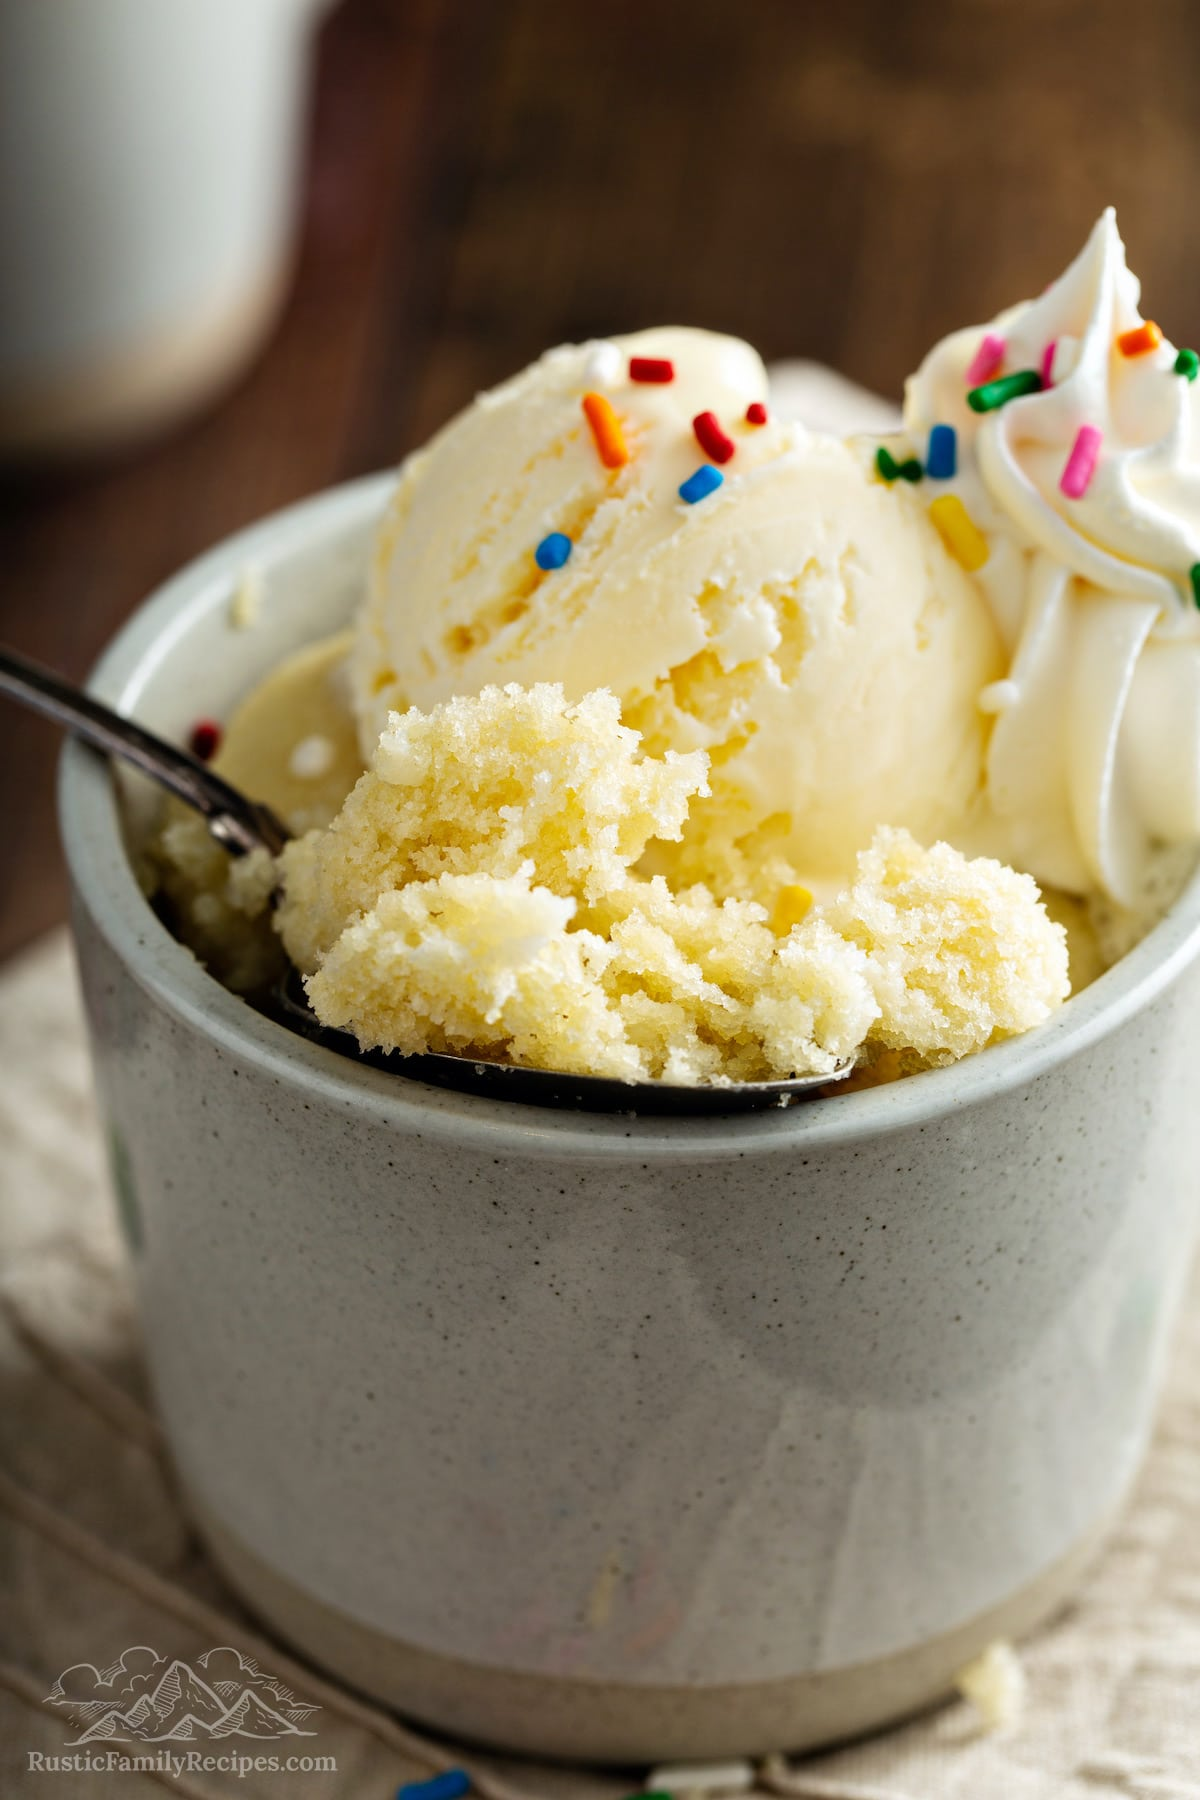 A spoon scooping out moist vanilla cake in a mug with ice cream.